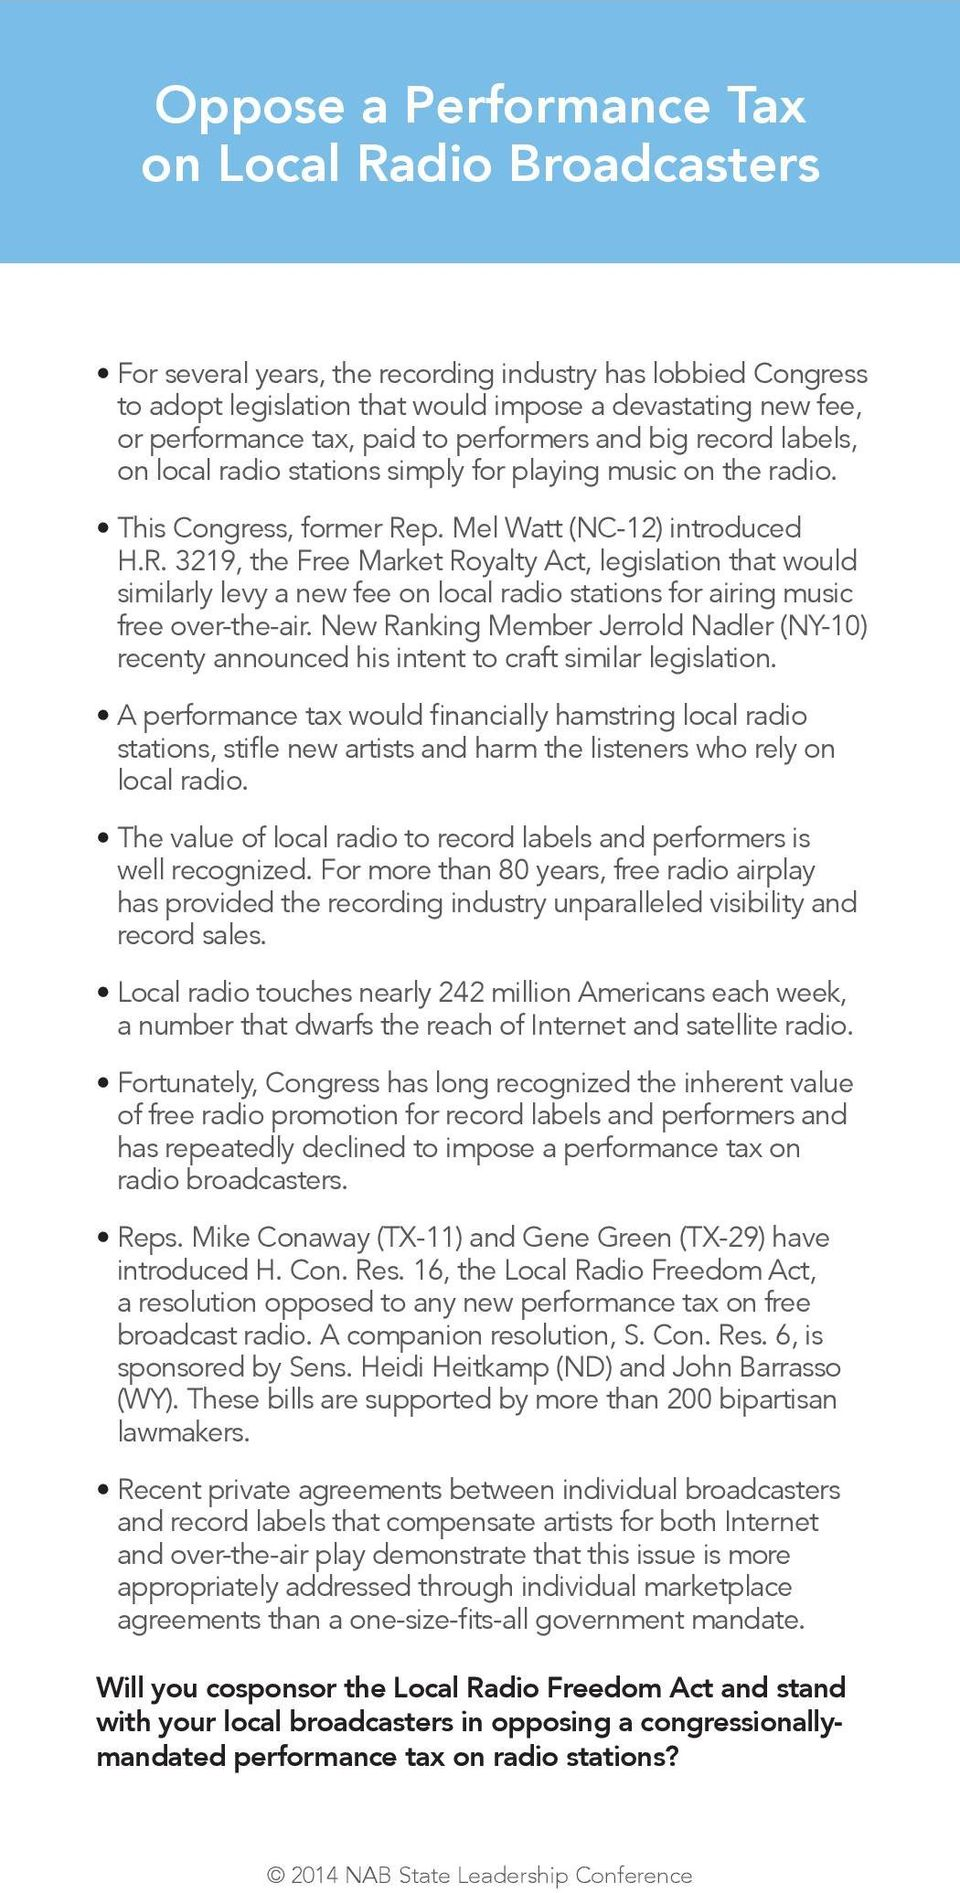 p. Mel Watt (NC-12) introduced H.R. 3219, the Free Market Royalty Act, legislation that would similarly levy a new fee on local radio stations for airing music free over-the-air.